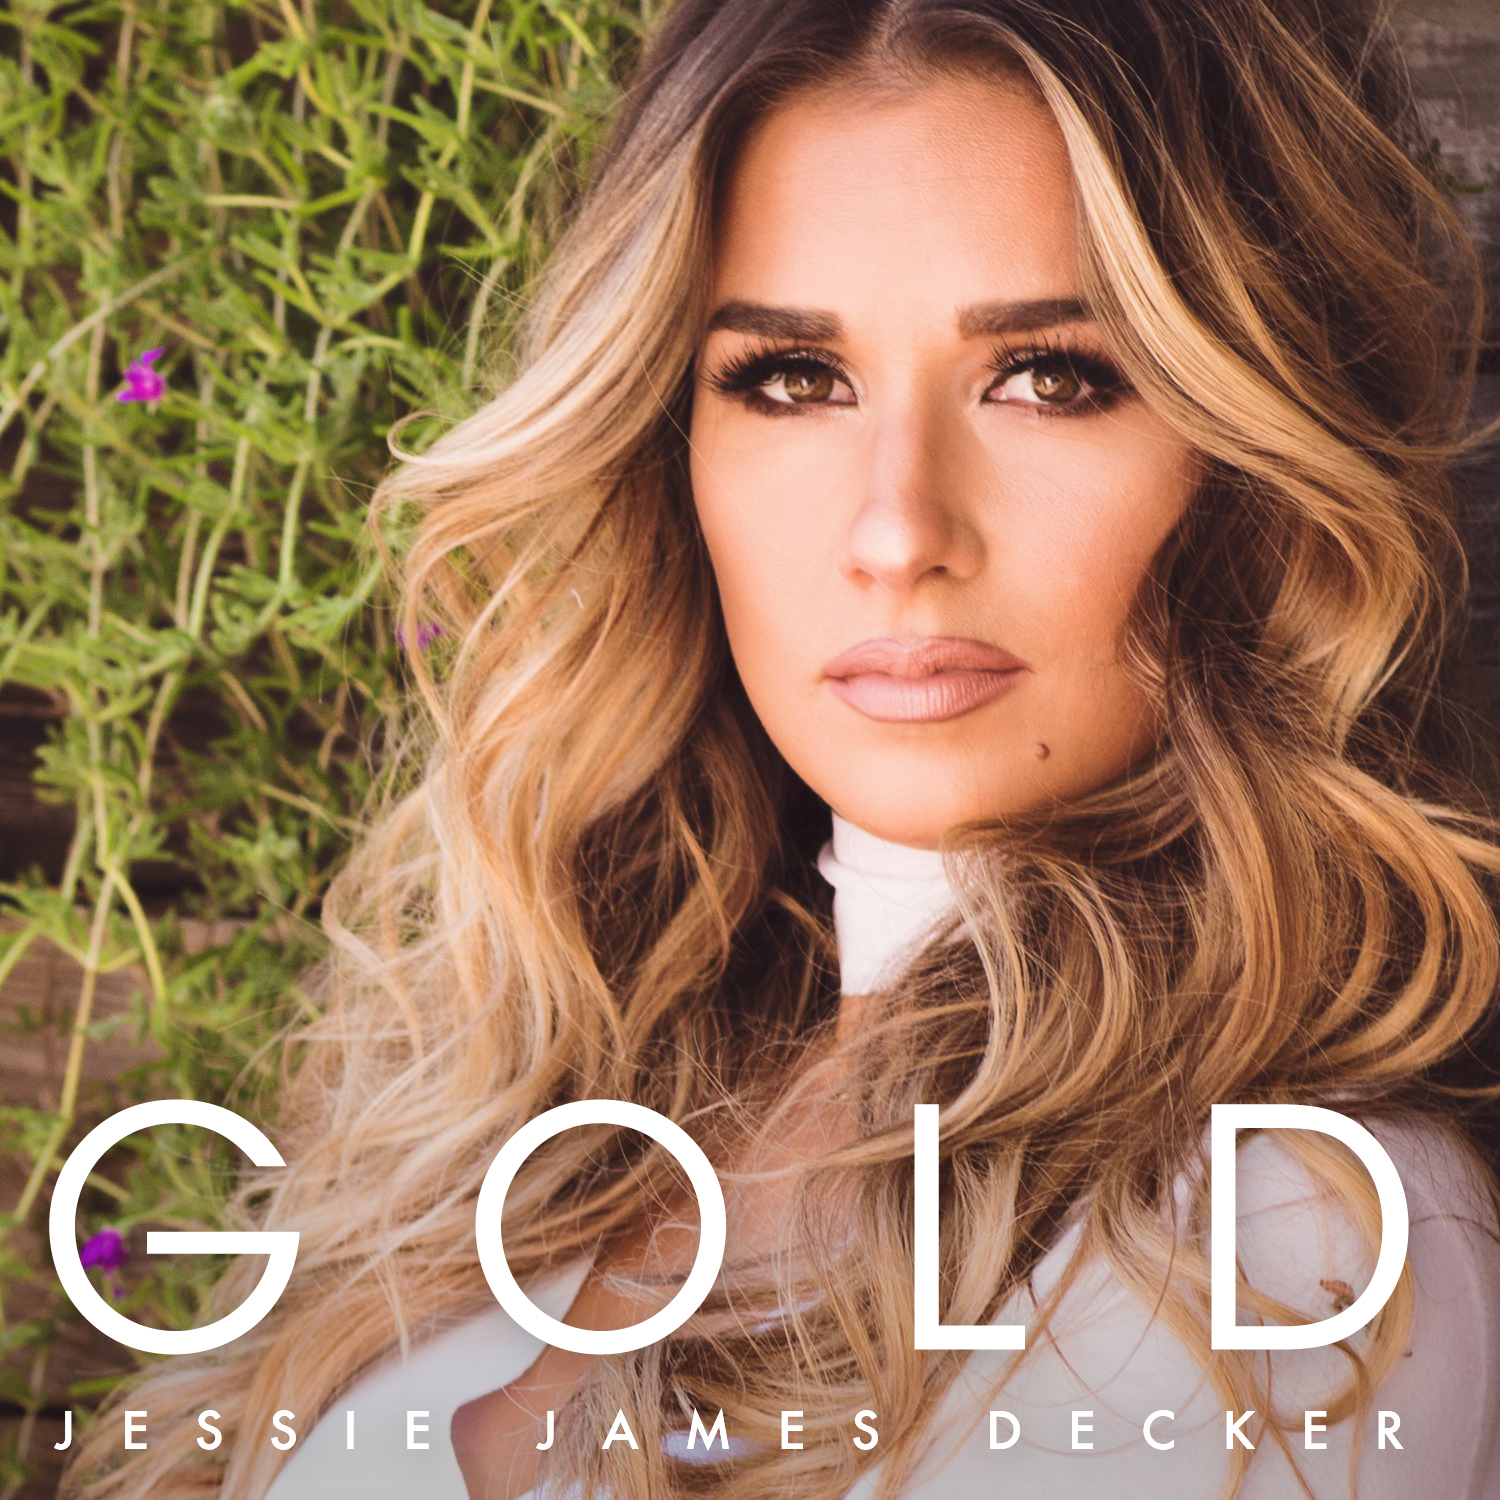 Jessie James Decker Announces New EP, Reveals Cover Art